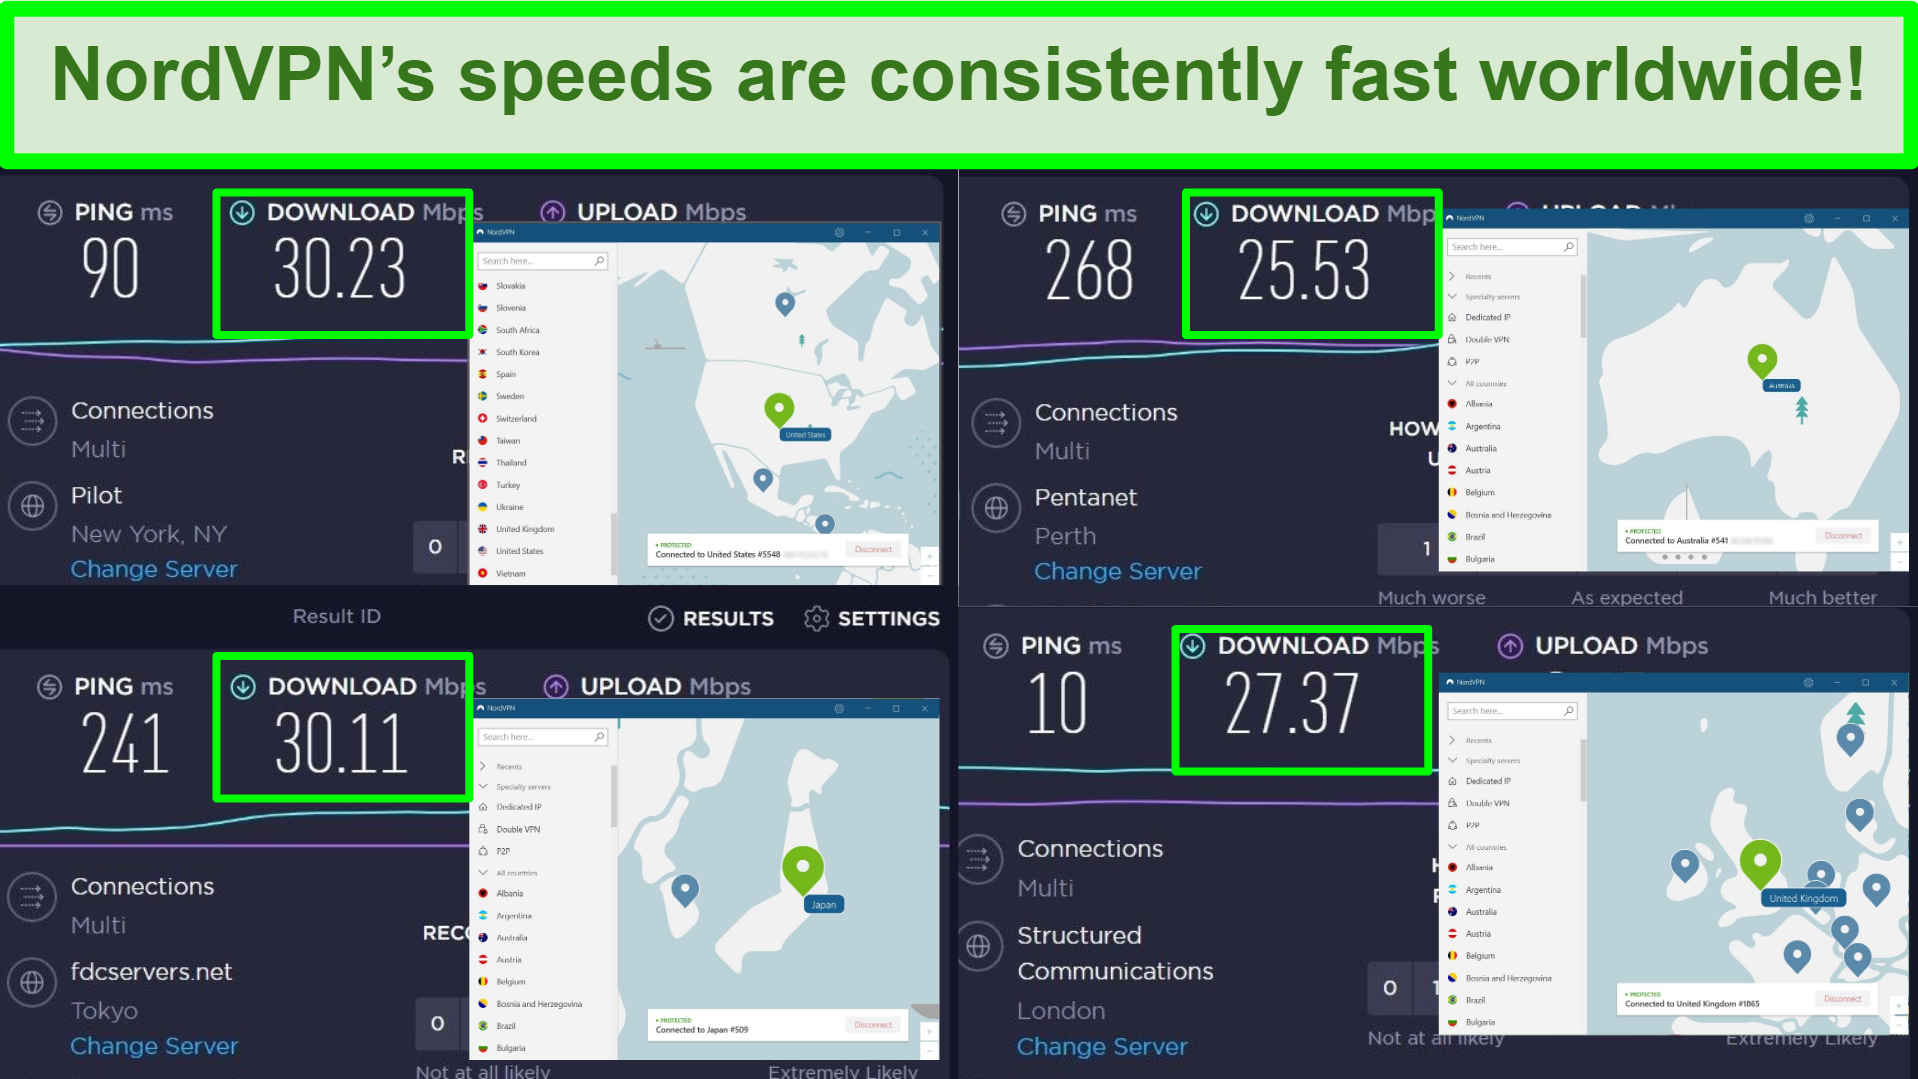 Screenshots showing Ookla speed tests with NordVPN connected to 4 different servers